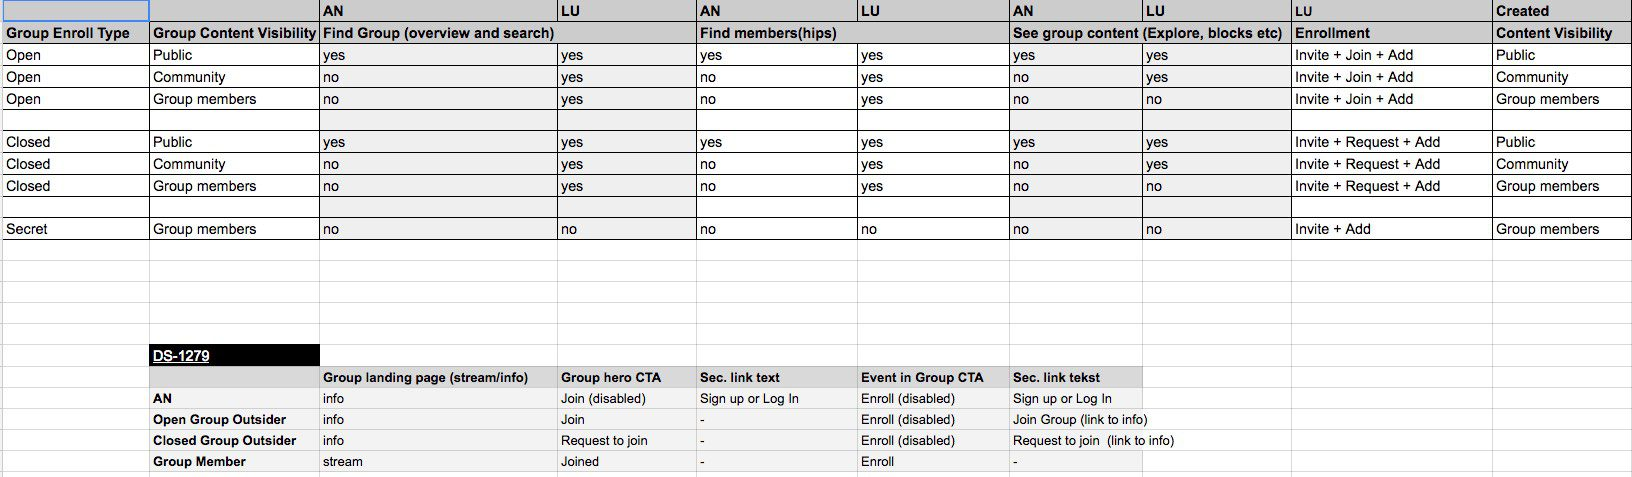 Table of permissions in closed and open groups (Drupal 8)